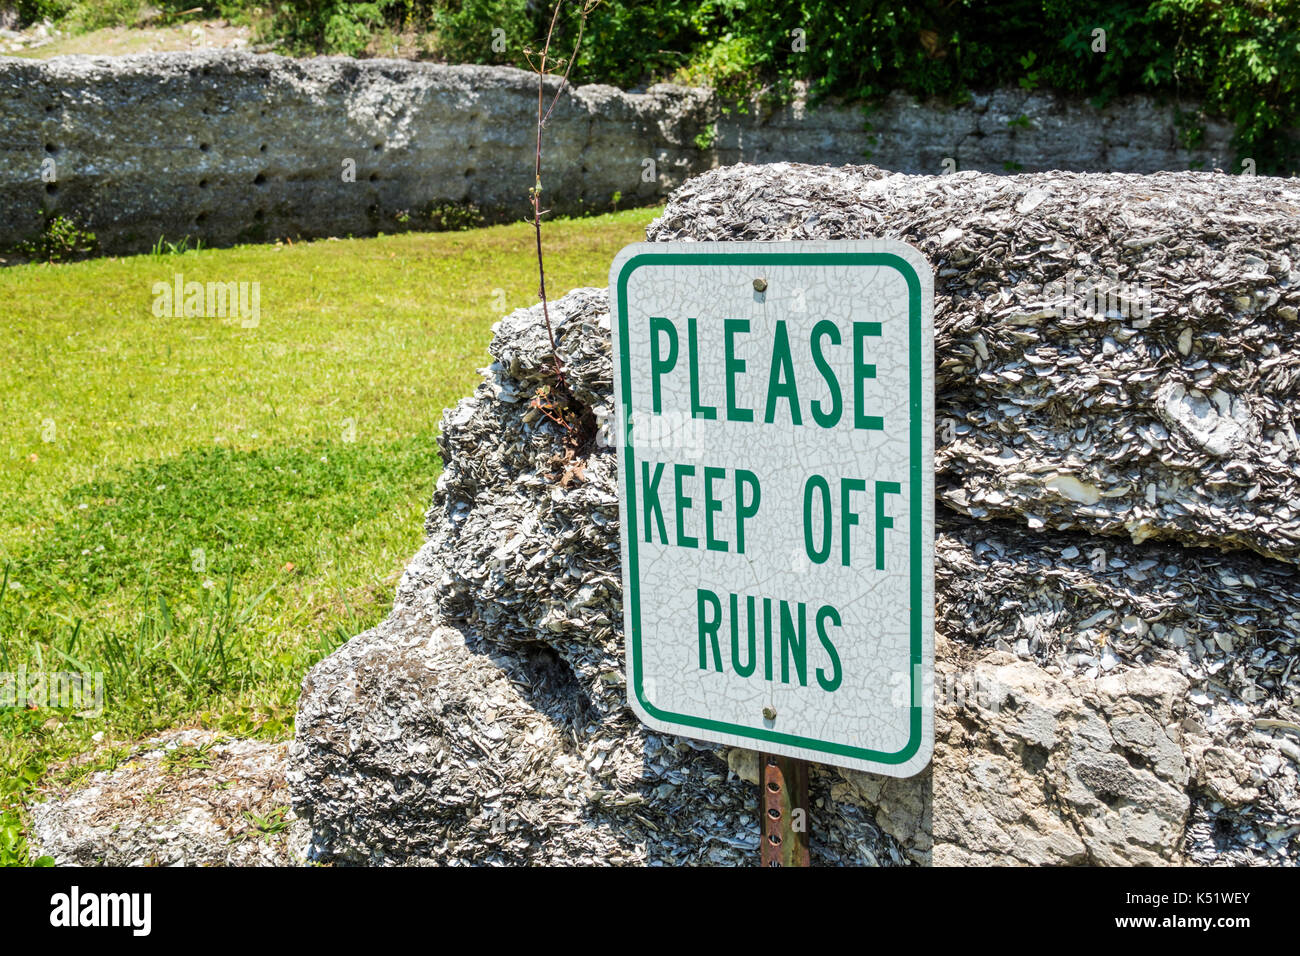 Darien Georgia Waterfront Park tabby ruins sign keep off - Stock Image